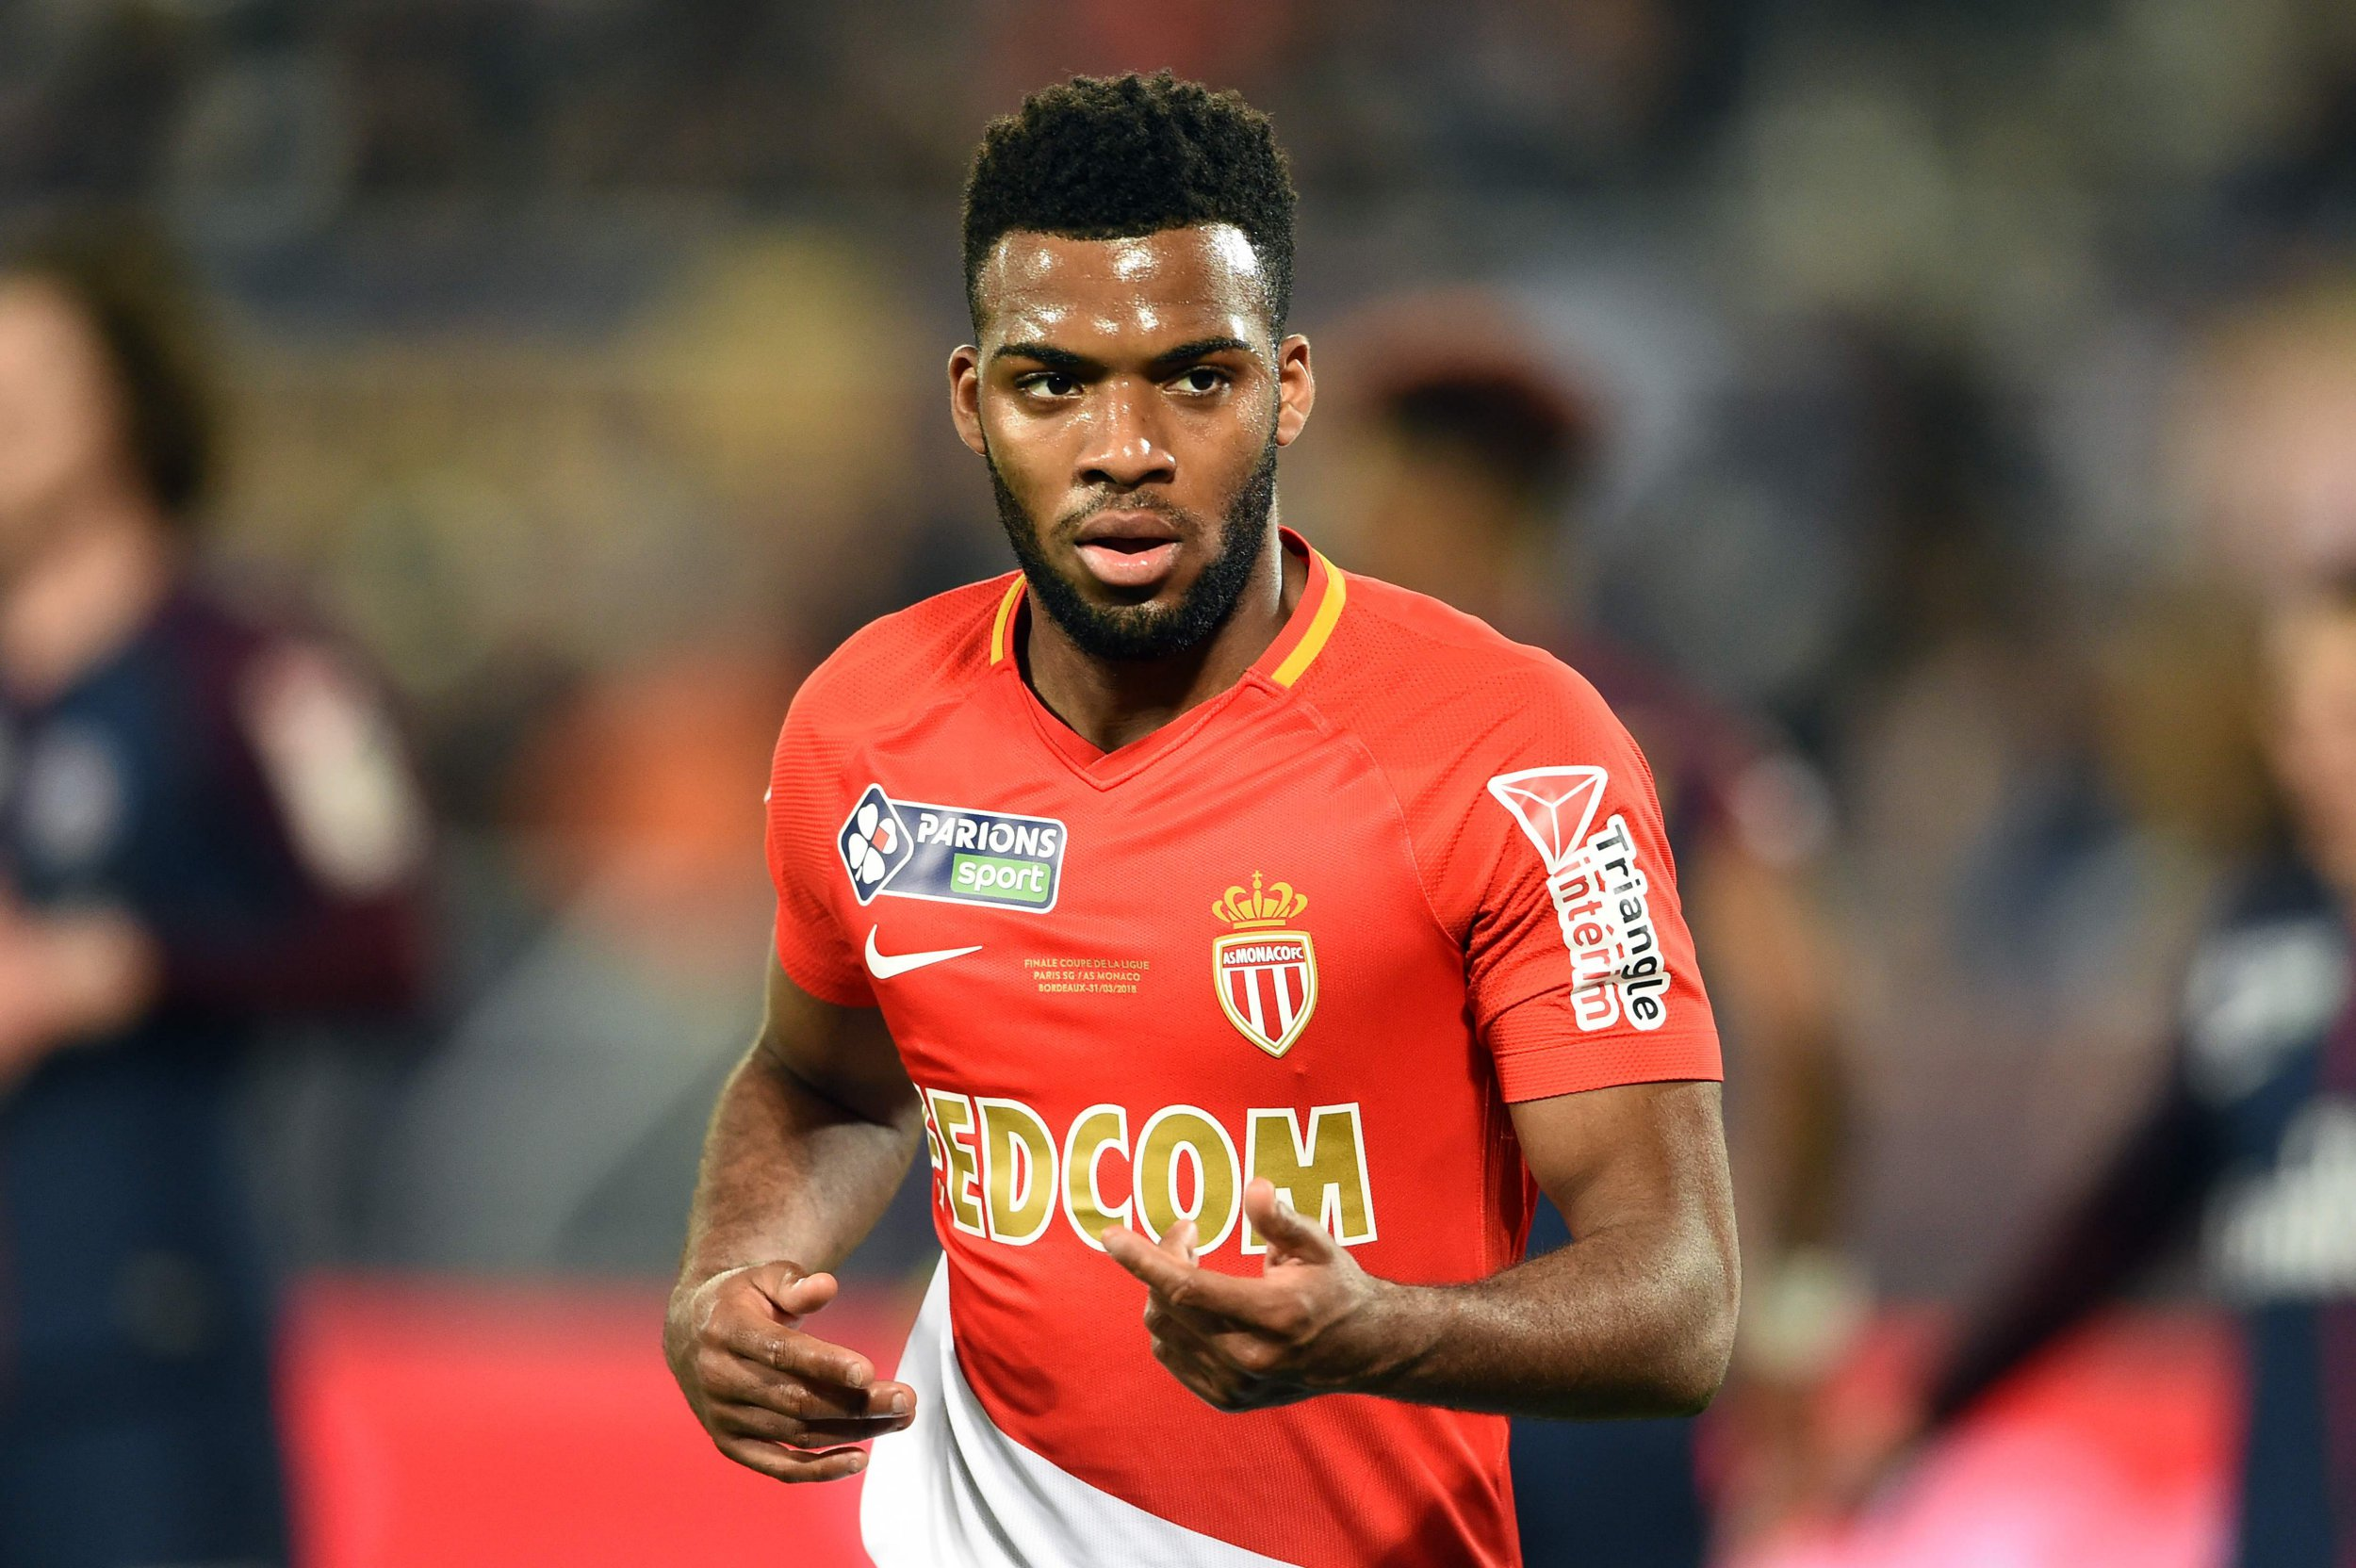 Monaco's French midfielder Thomas Lemar gestures during the French League Cup final football match between Monaco (ASM) and Paris Saint-Germain (PSG) at The Matmut Atlantique Stadium in Bordeaux, southwestern France on March 31, 2018. / AFP PHOTO / Nicolas TUCATNICOLAS TUCAT/AFP/Getty Images